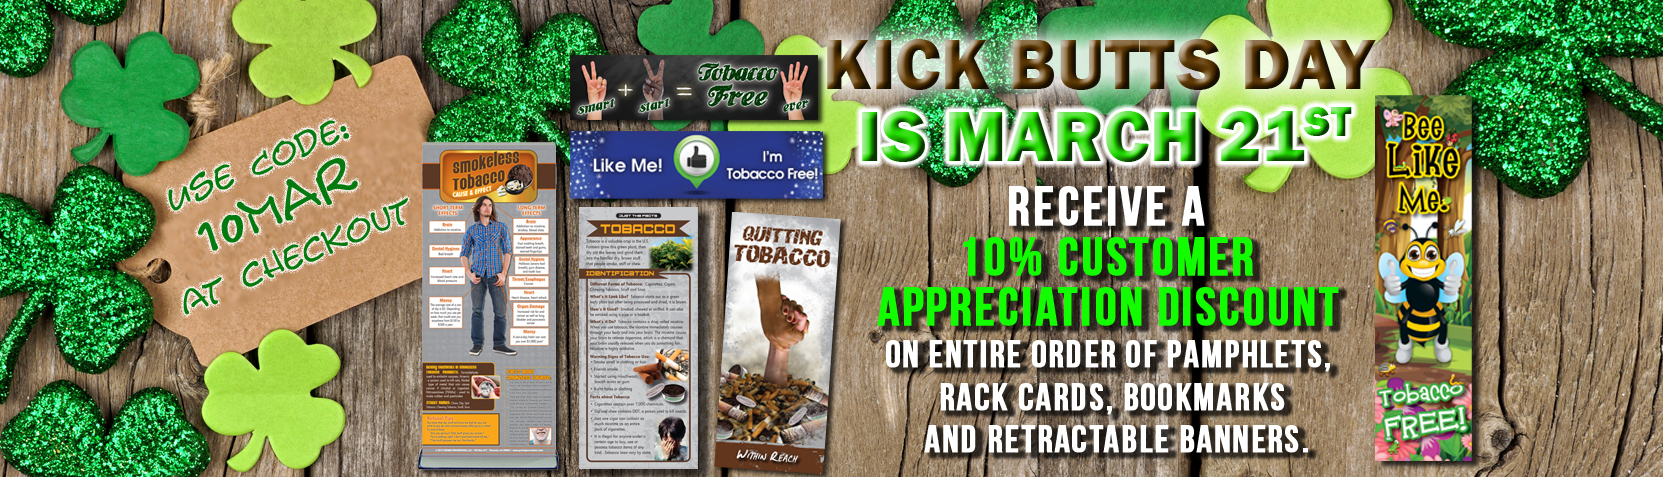 Kick Butts smoking tobacco prevention